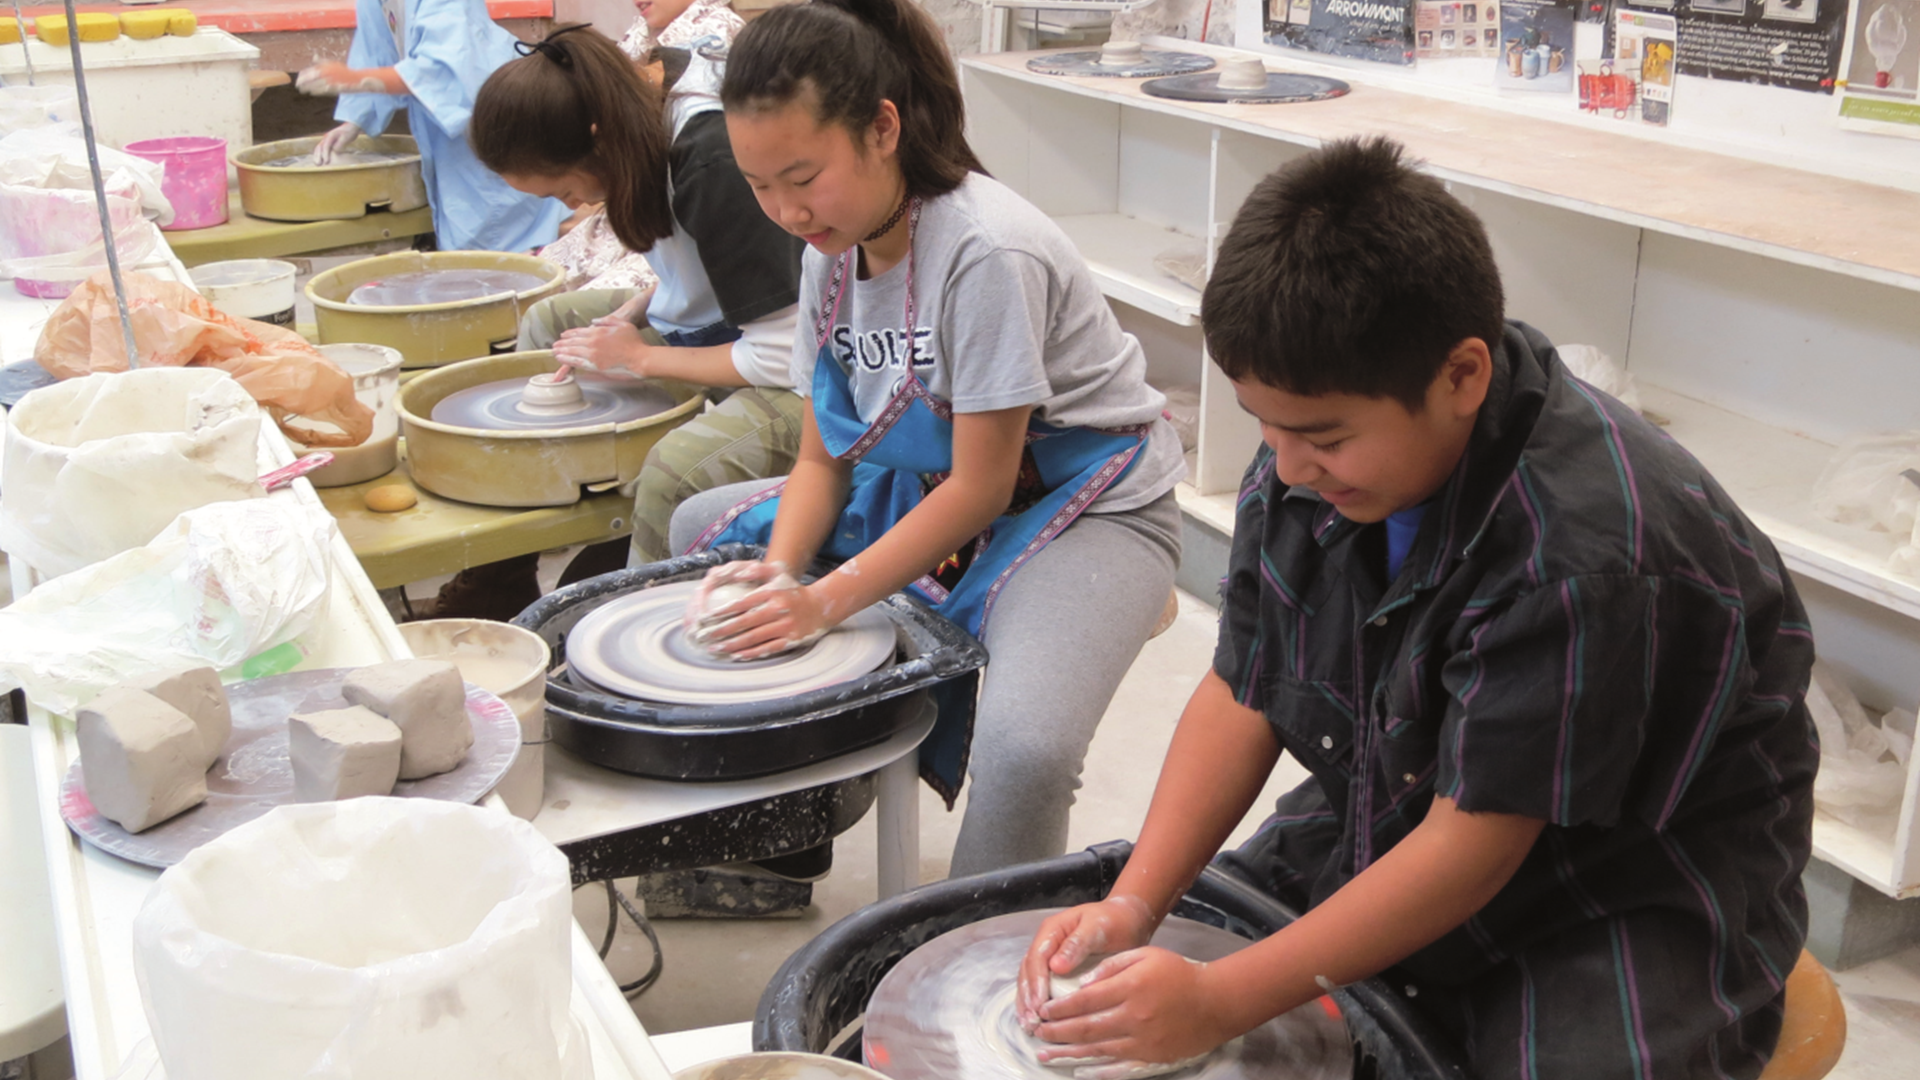 Wustum - Kids Using Pottery Wheels